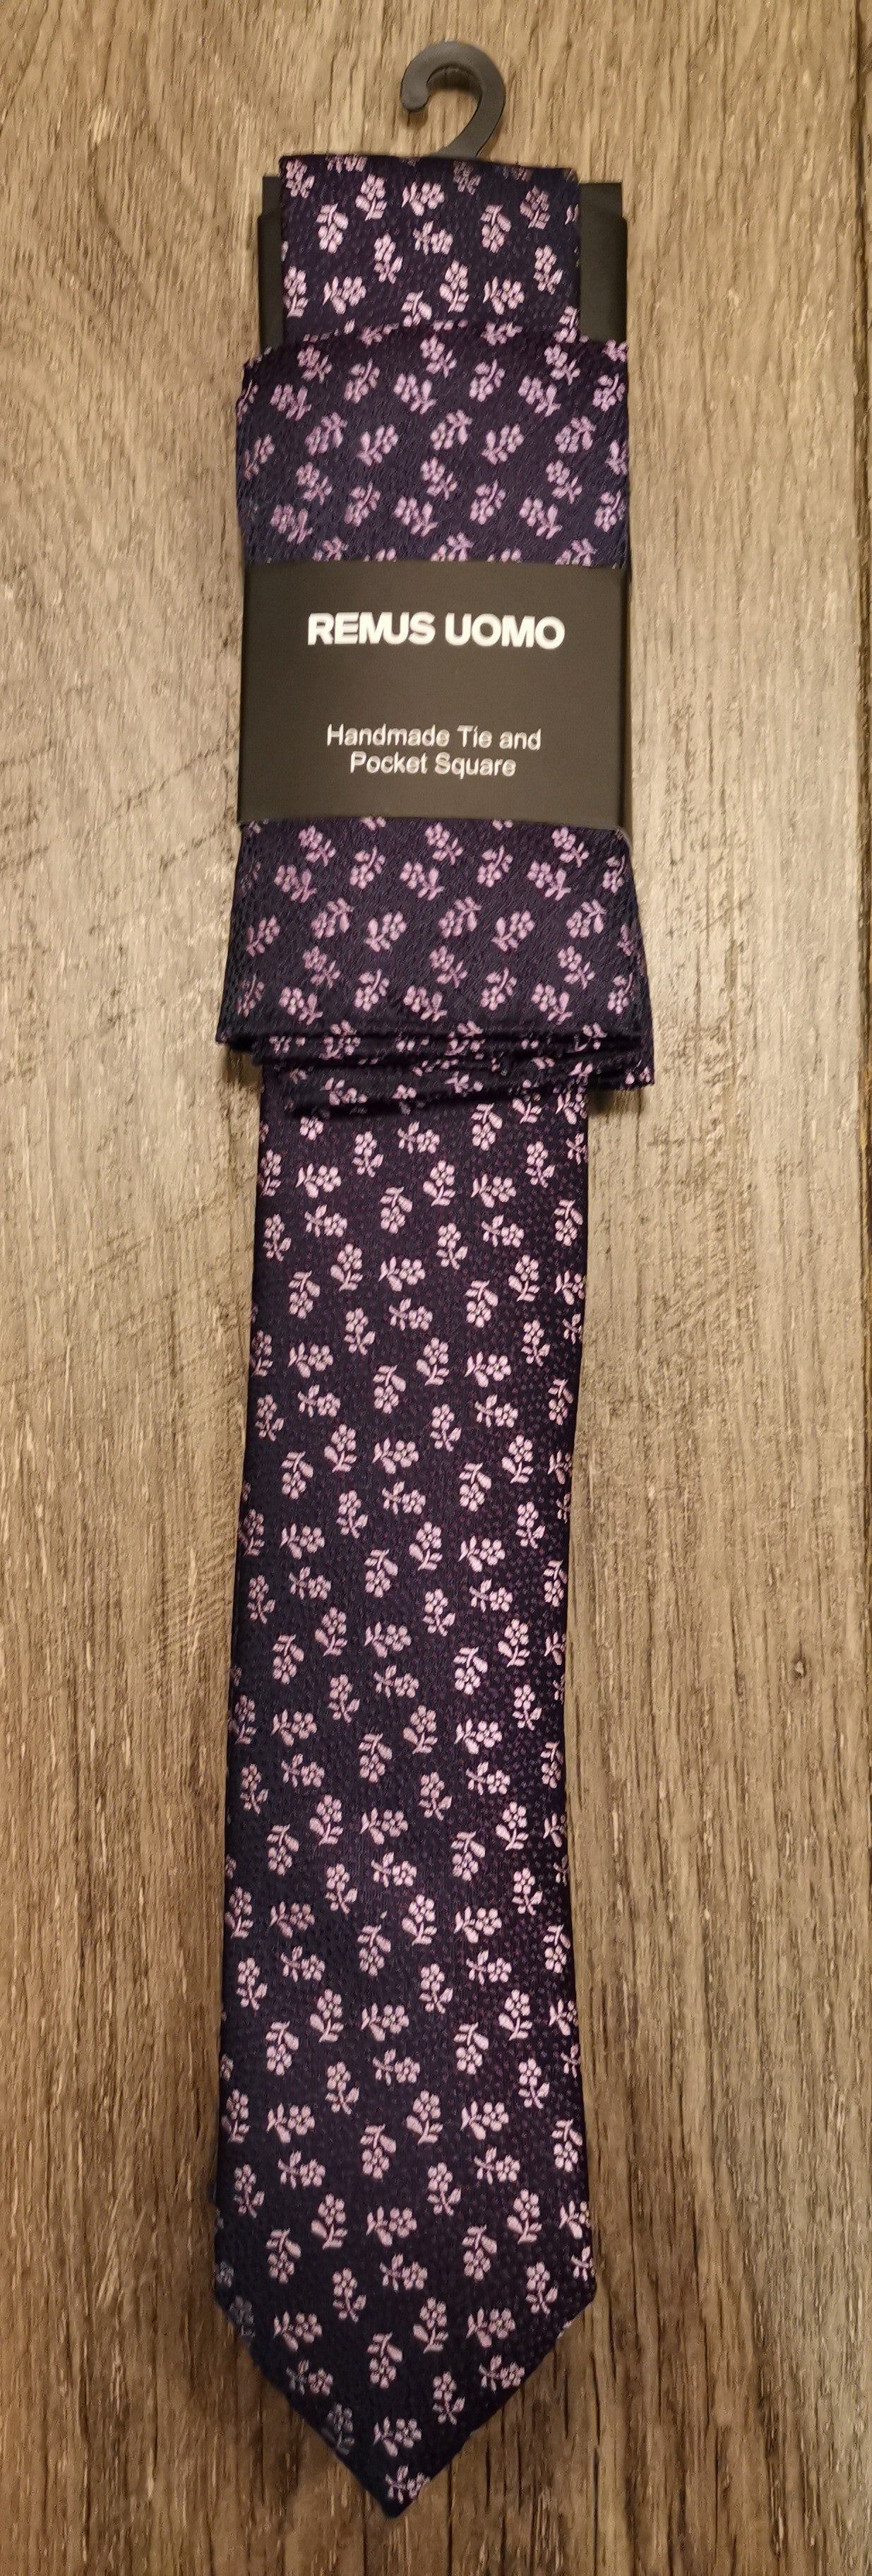 Remus Uomo Tie and Hank Sets